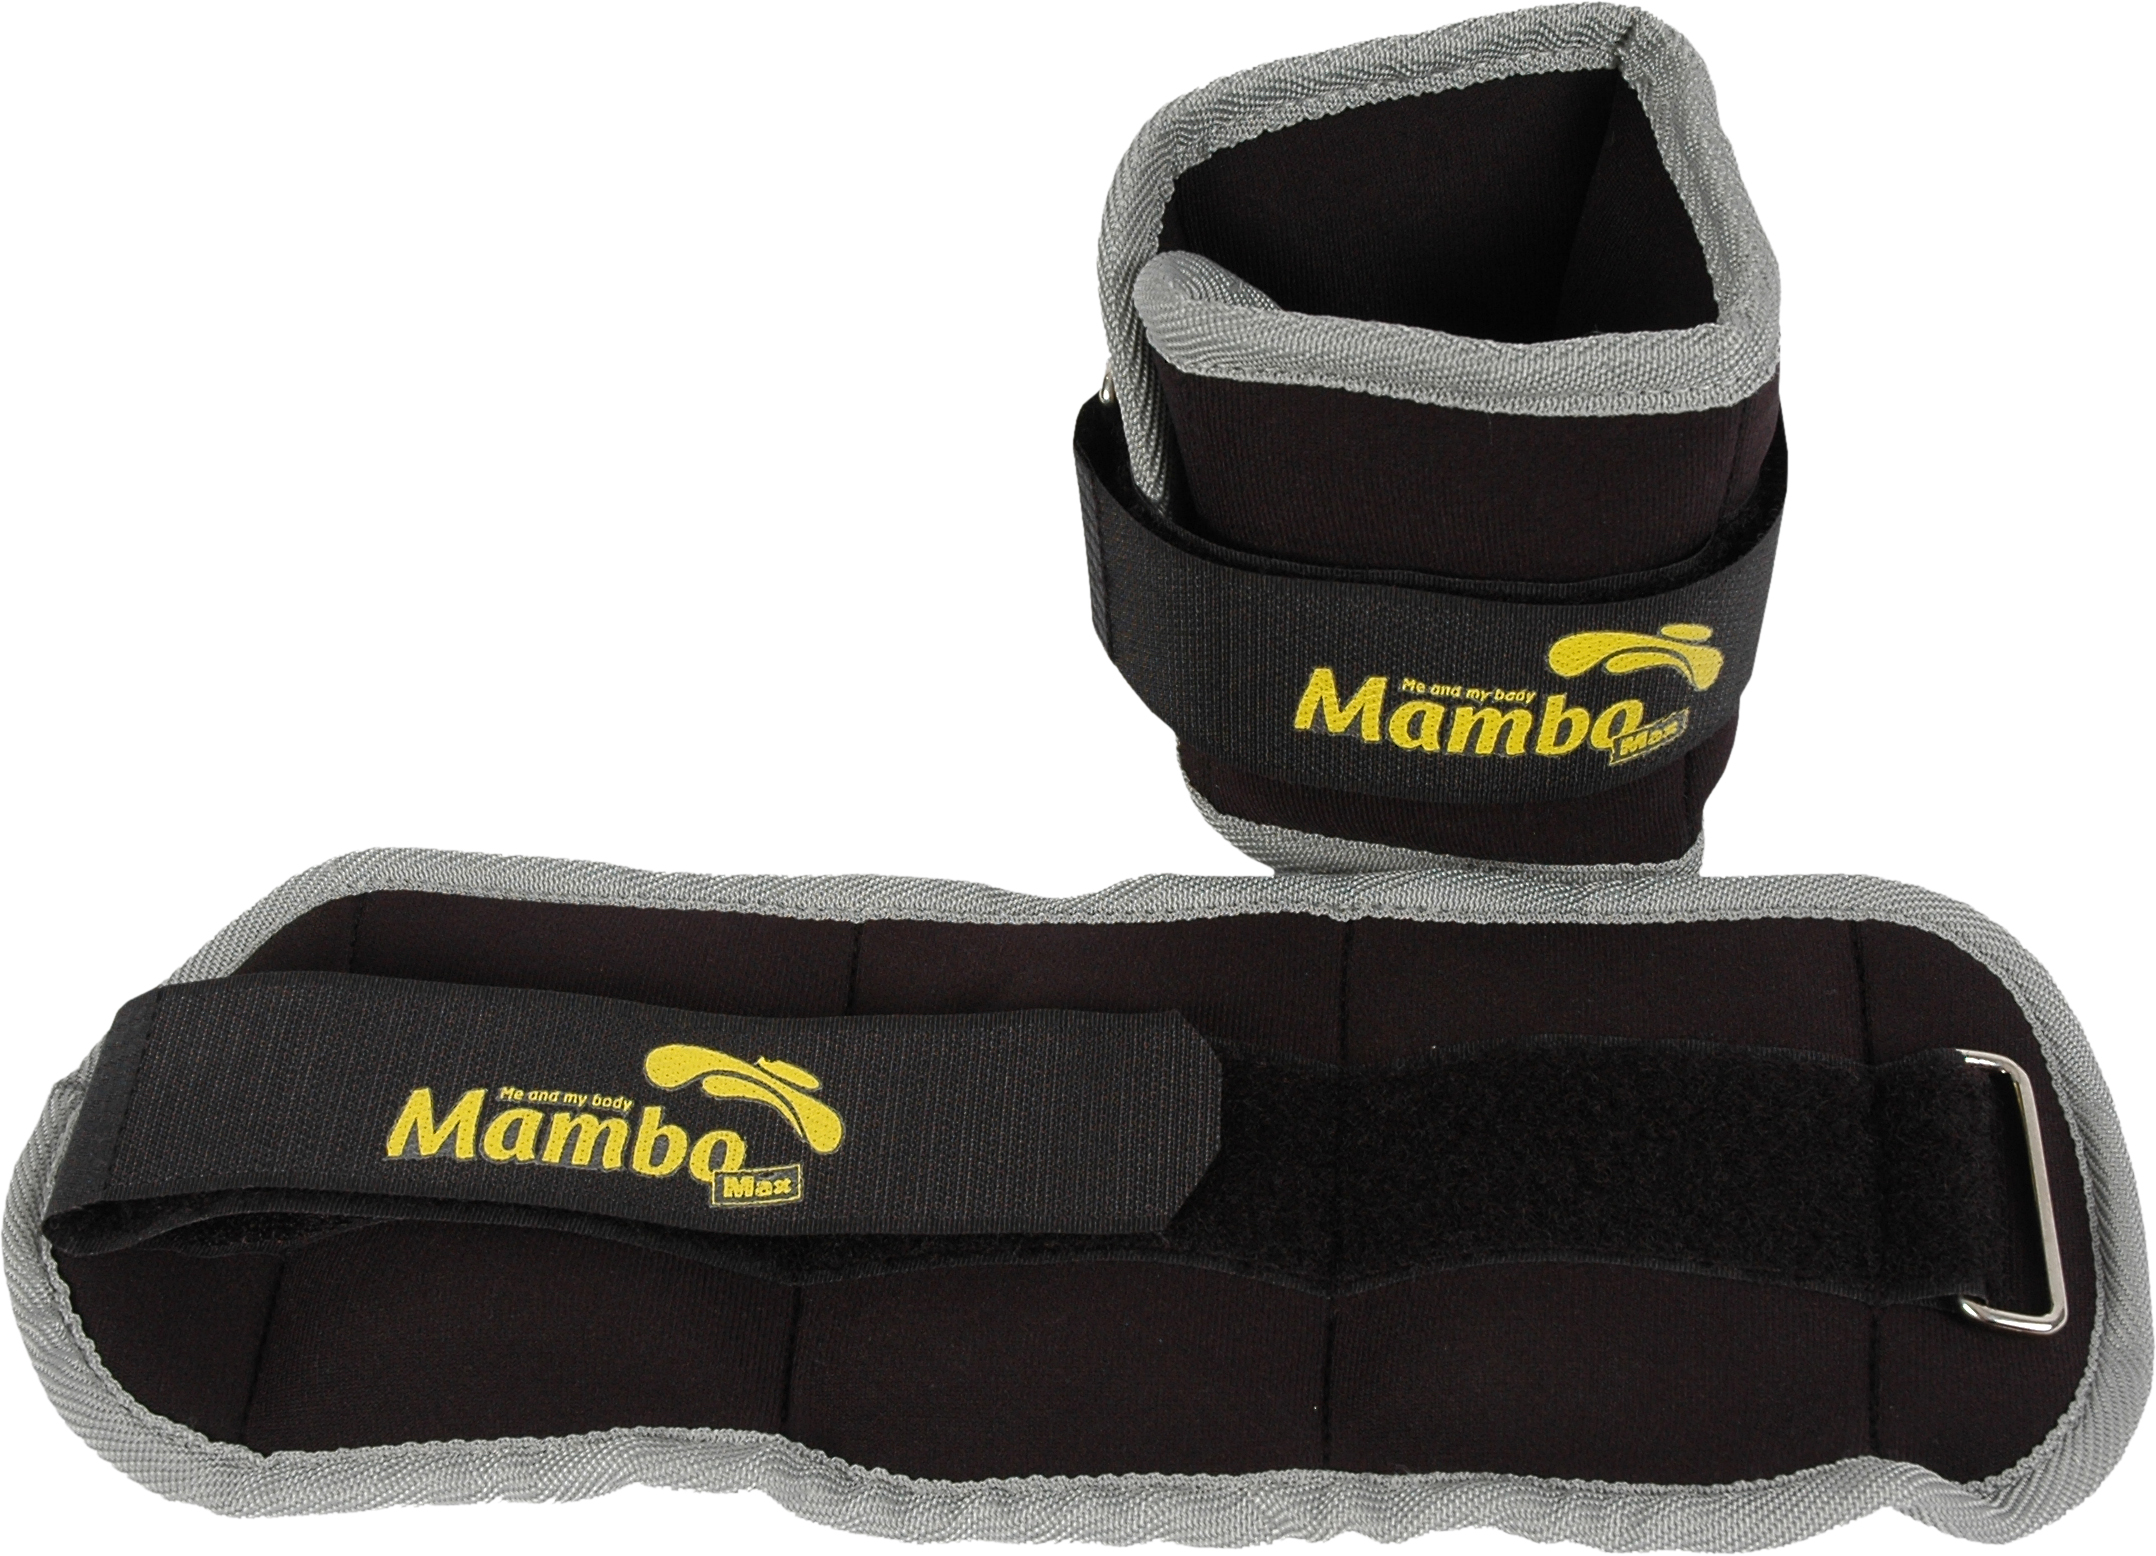 WRIST & ANKLE WEIGHT 1.5 KG PAIR